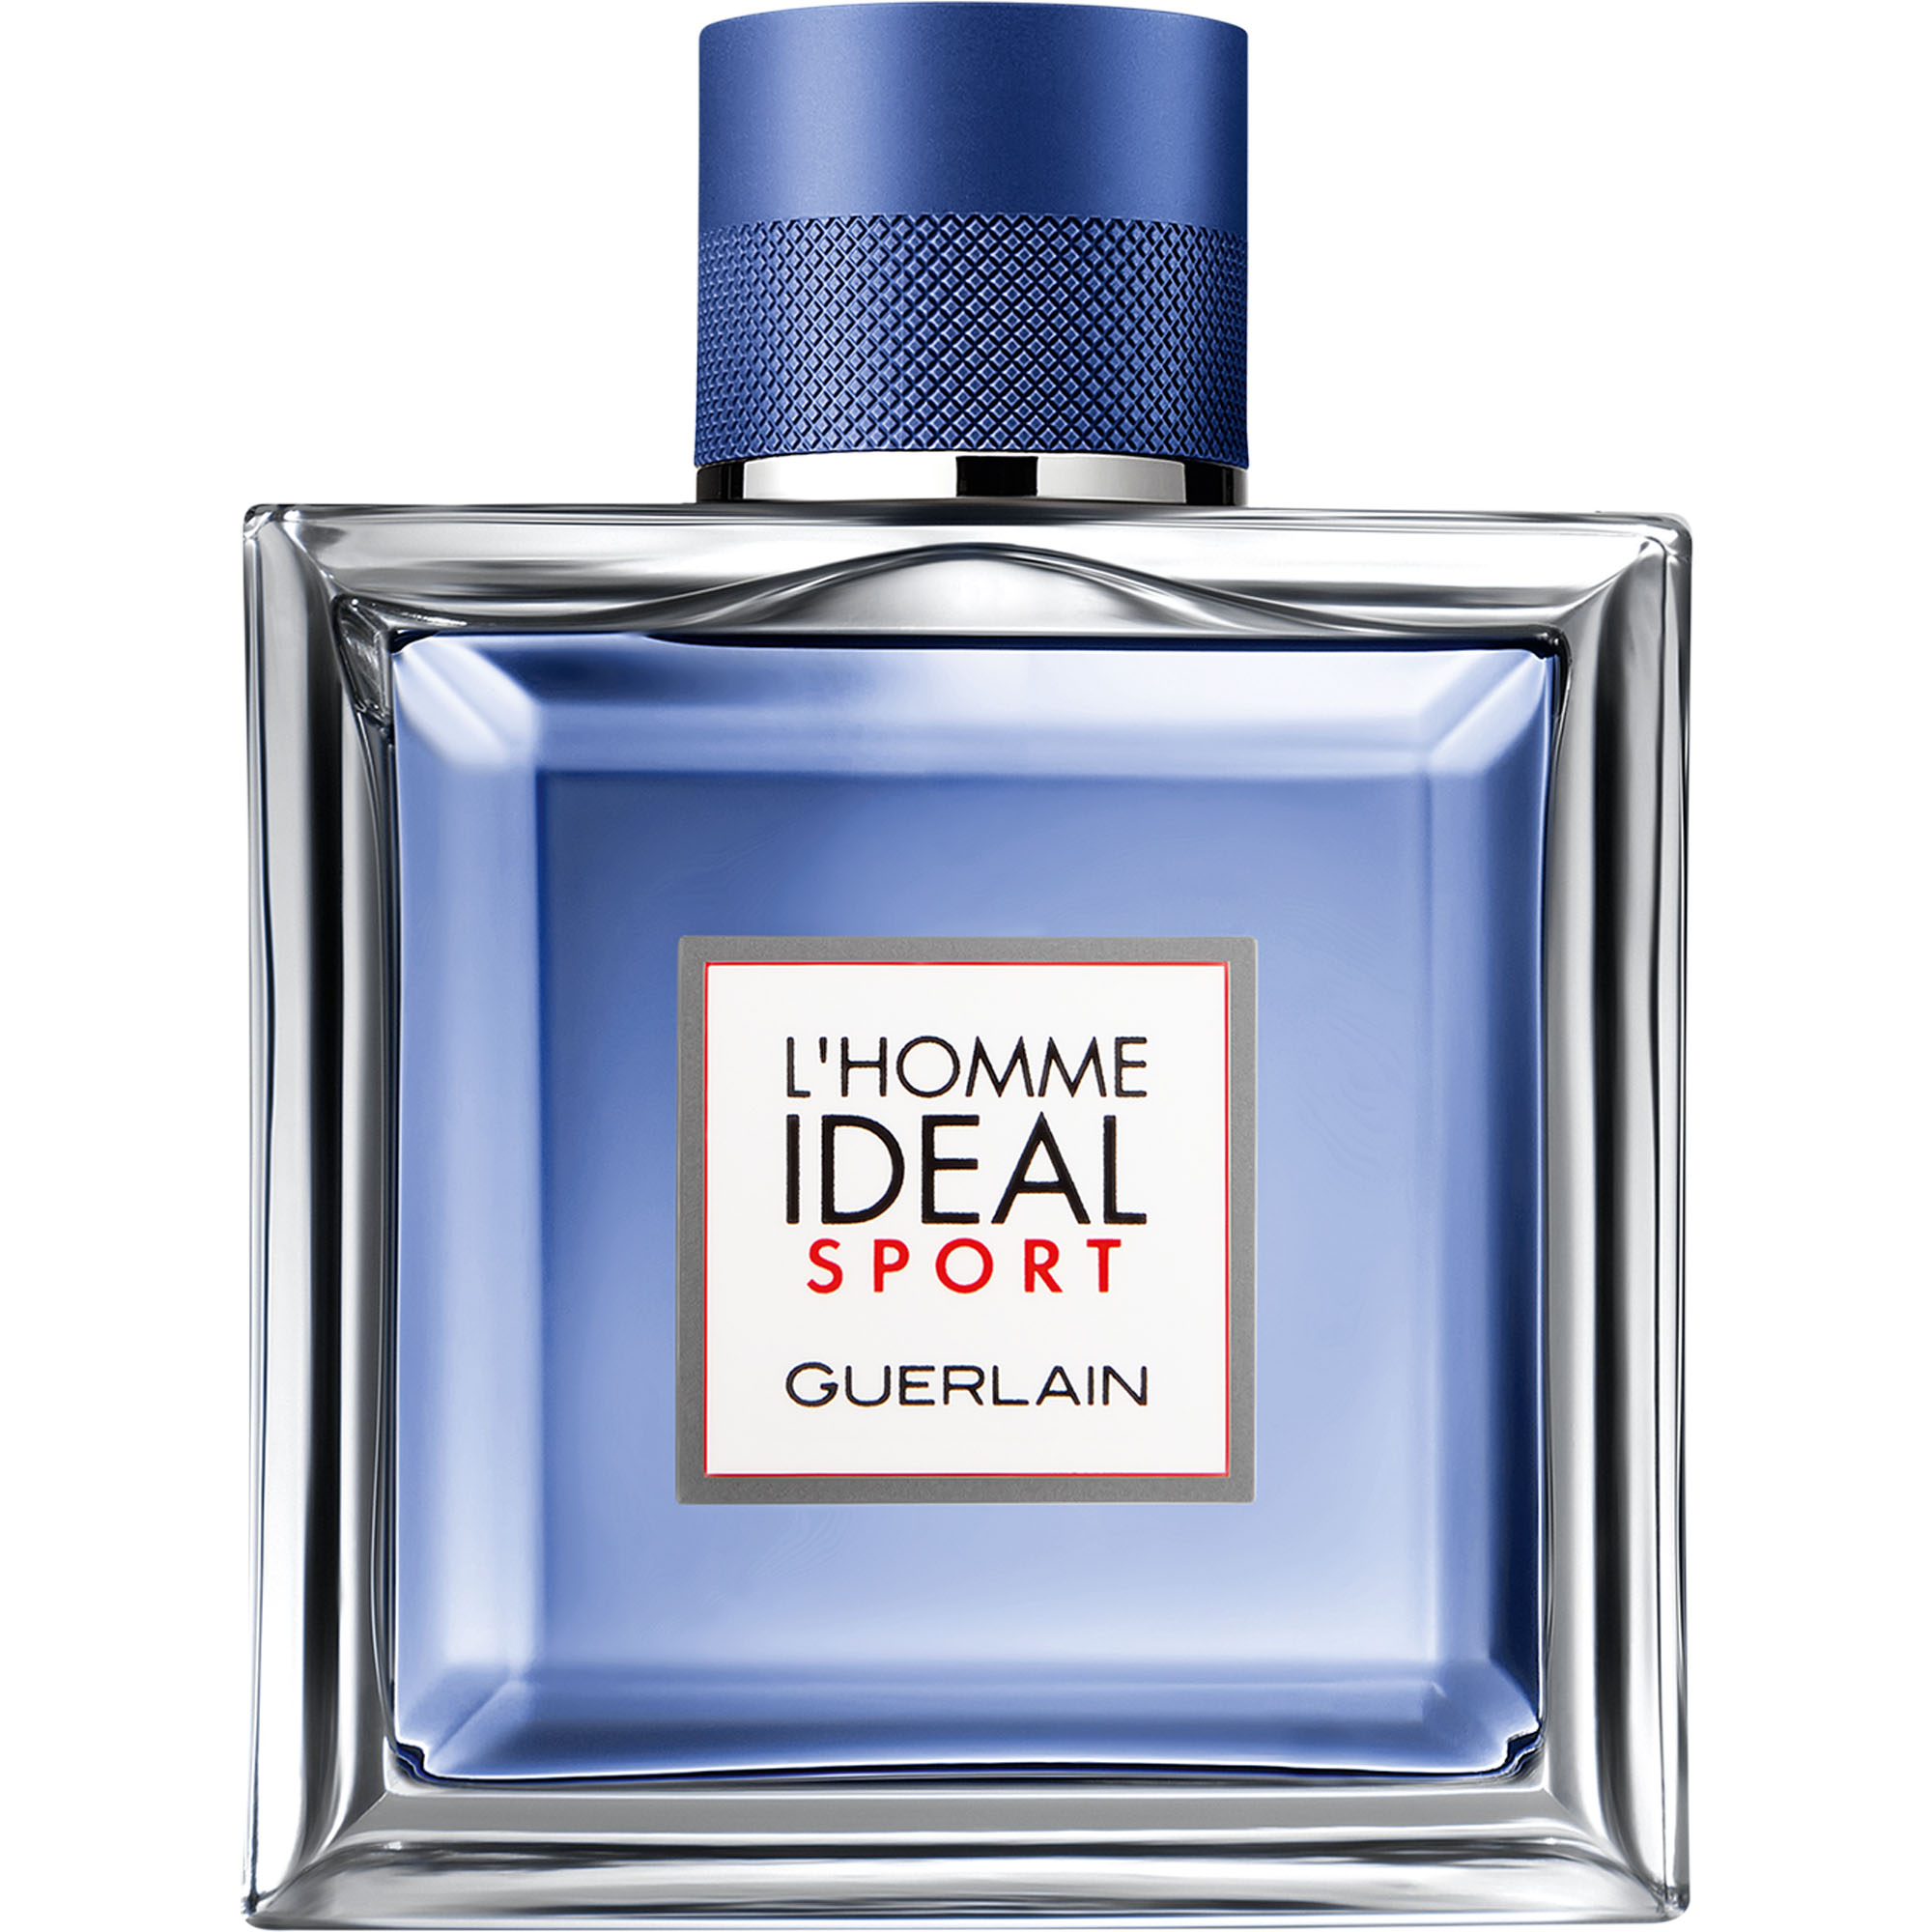 LHOMME IDEAL Y17 SPORT EDT 100ML SPRY